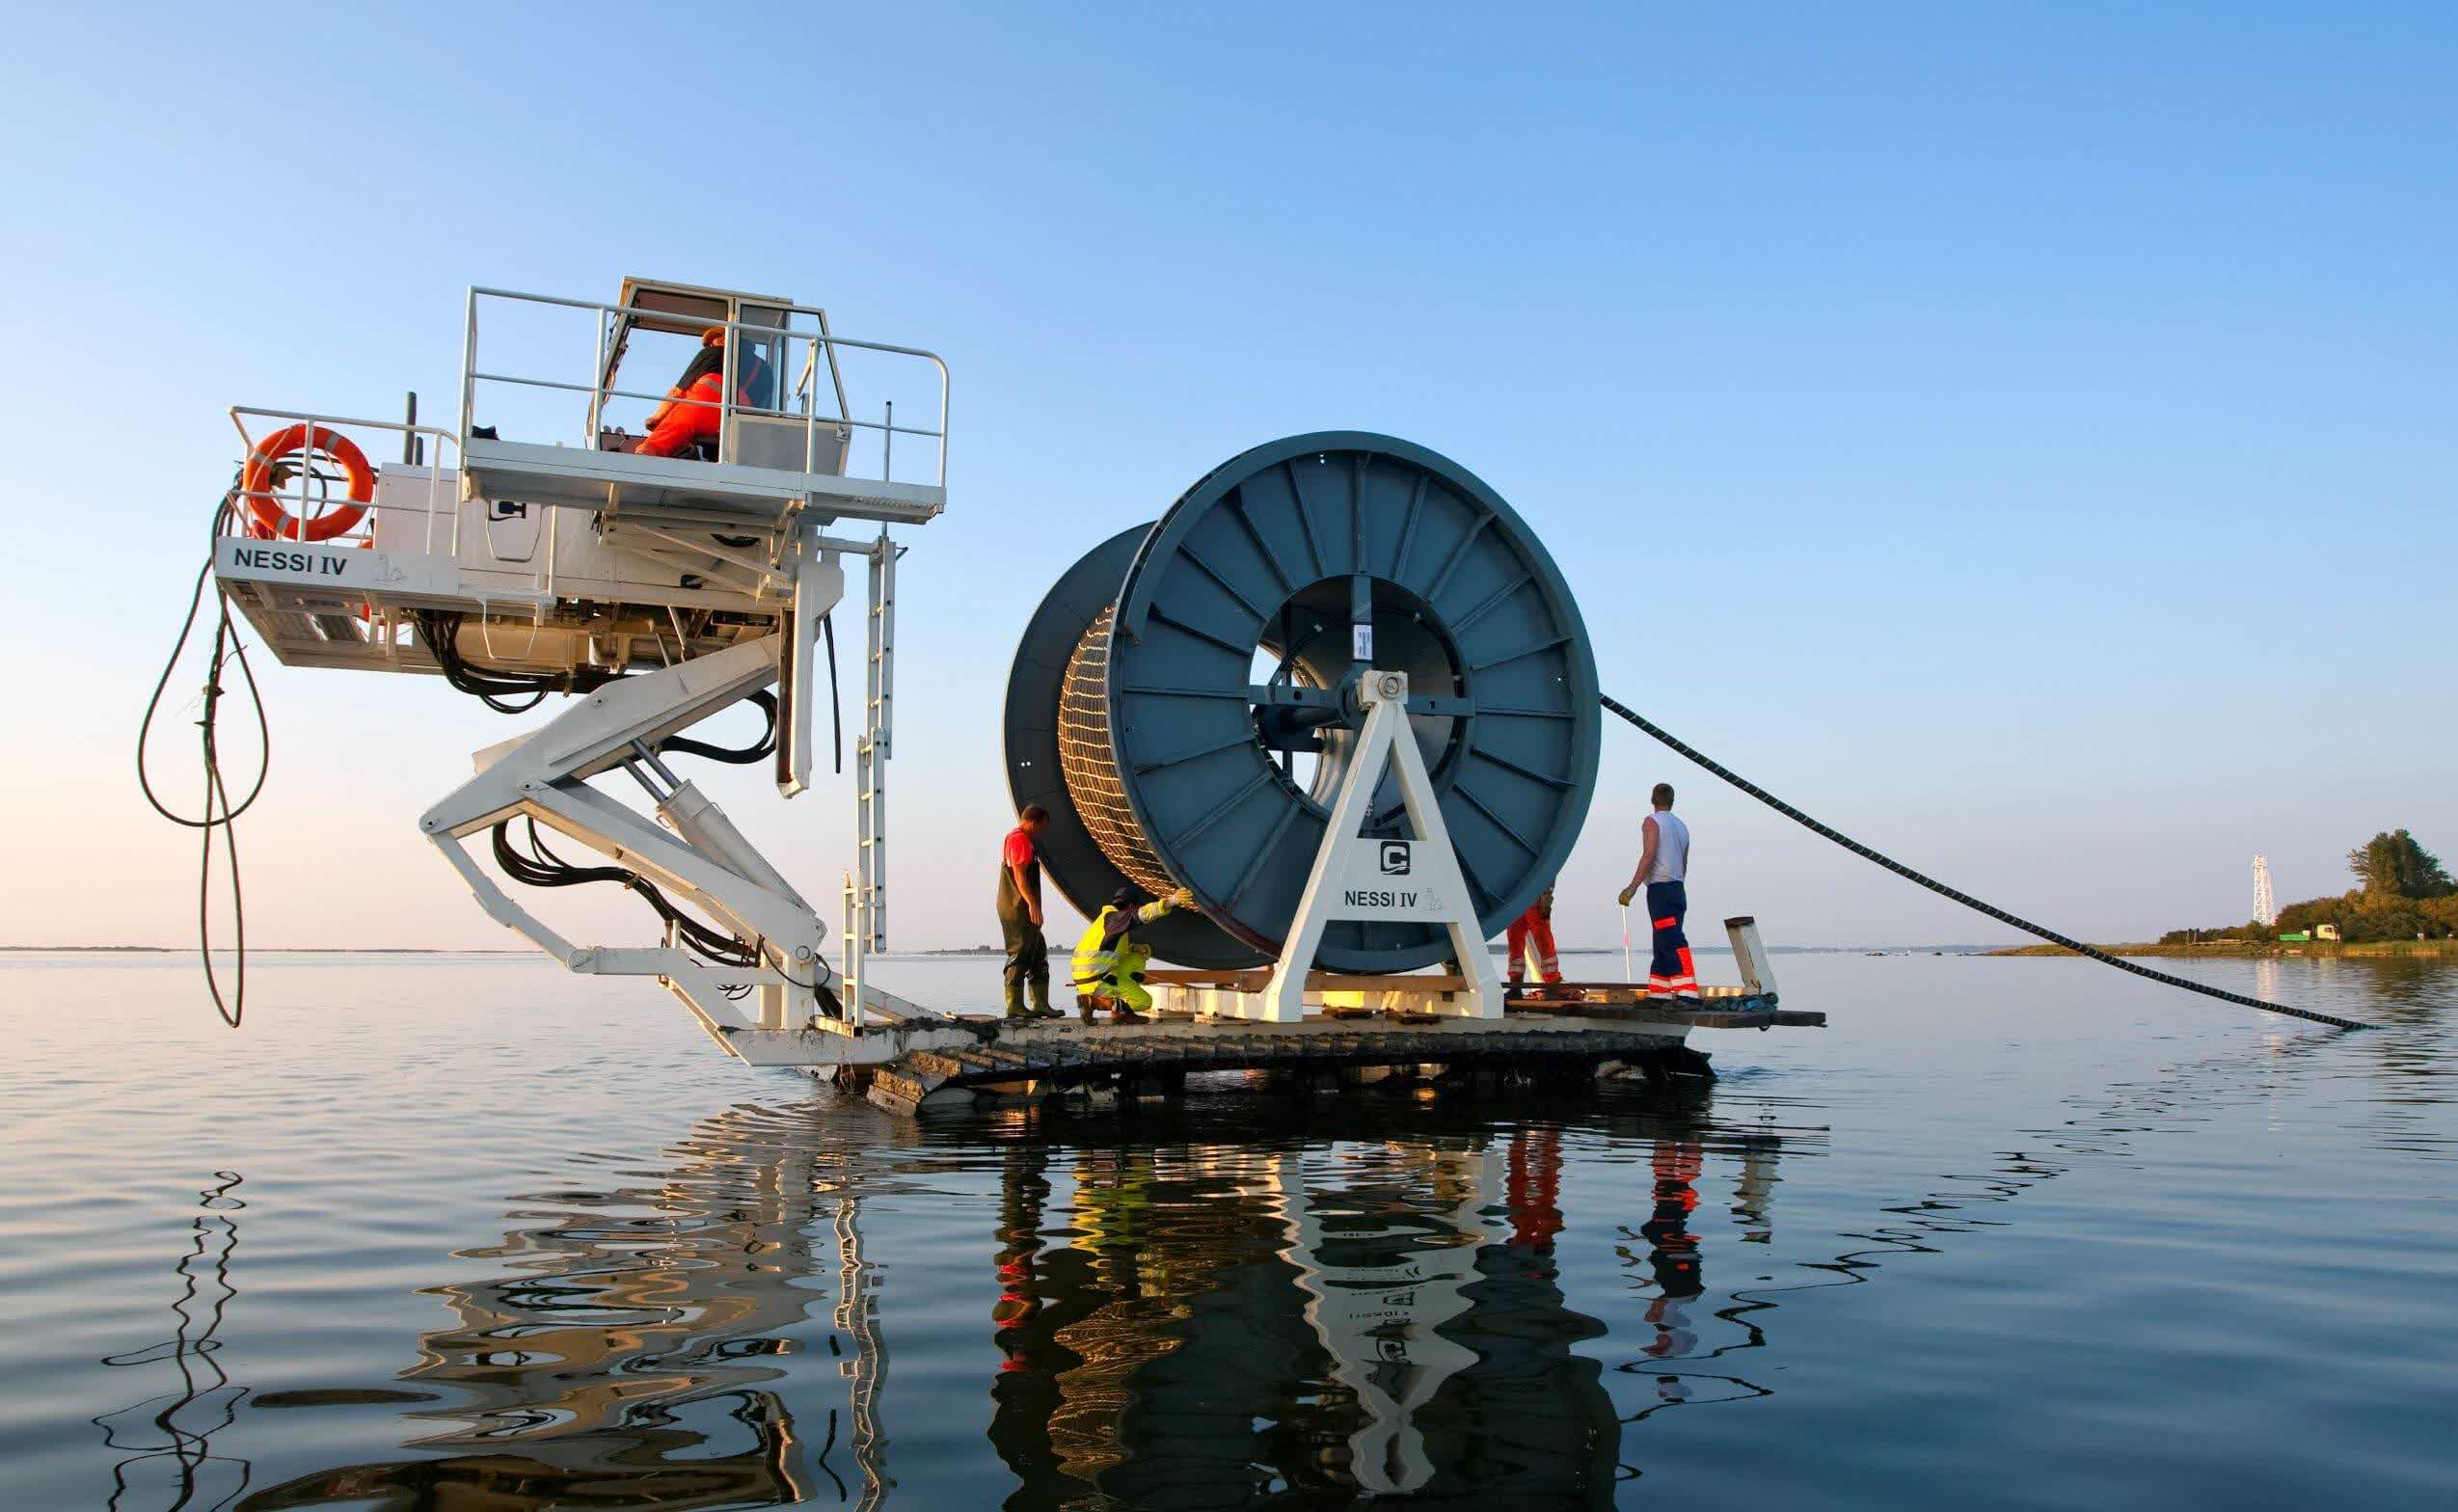 Google and Facebook are building a subsea cable system that will boost Internet connectivity in the Asia-Pacific region